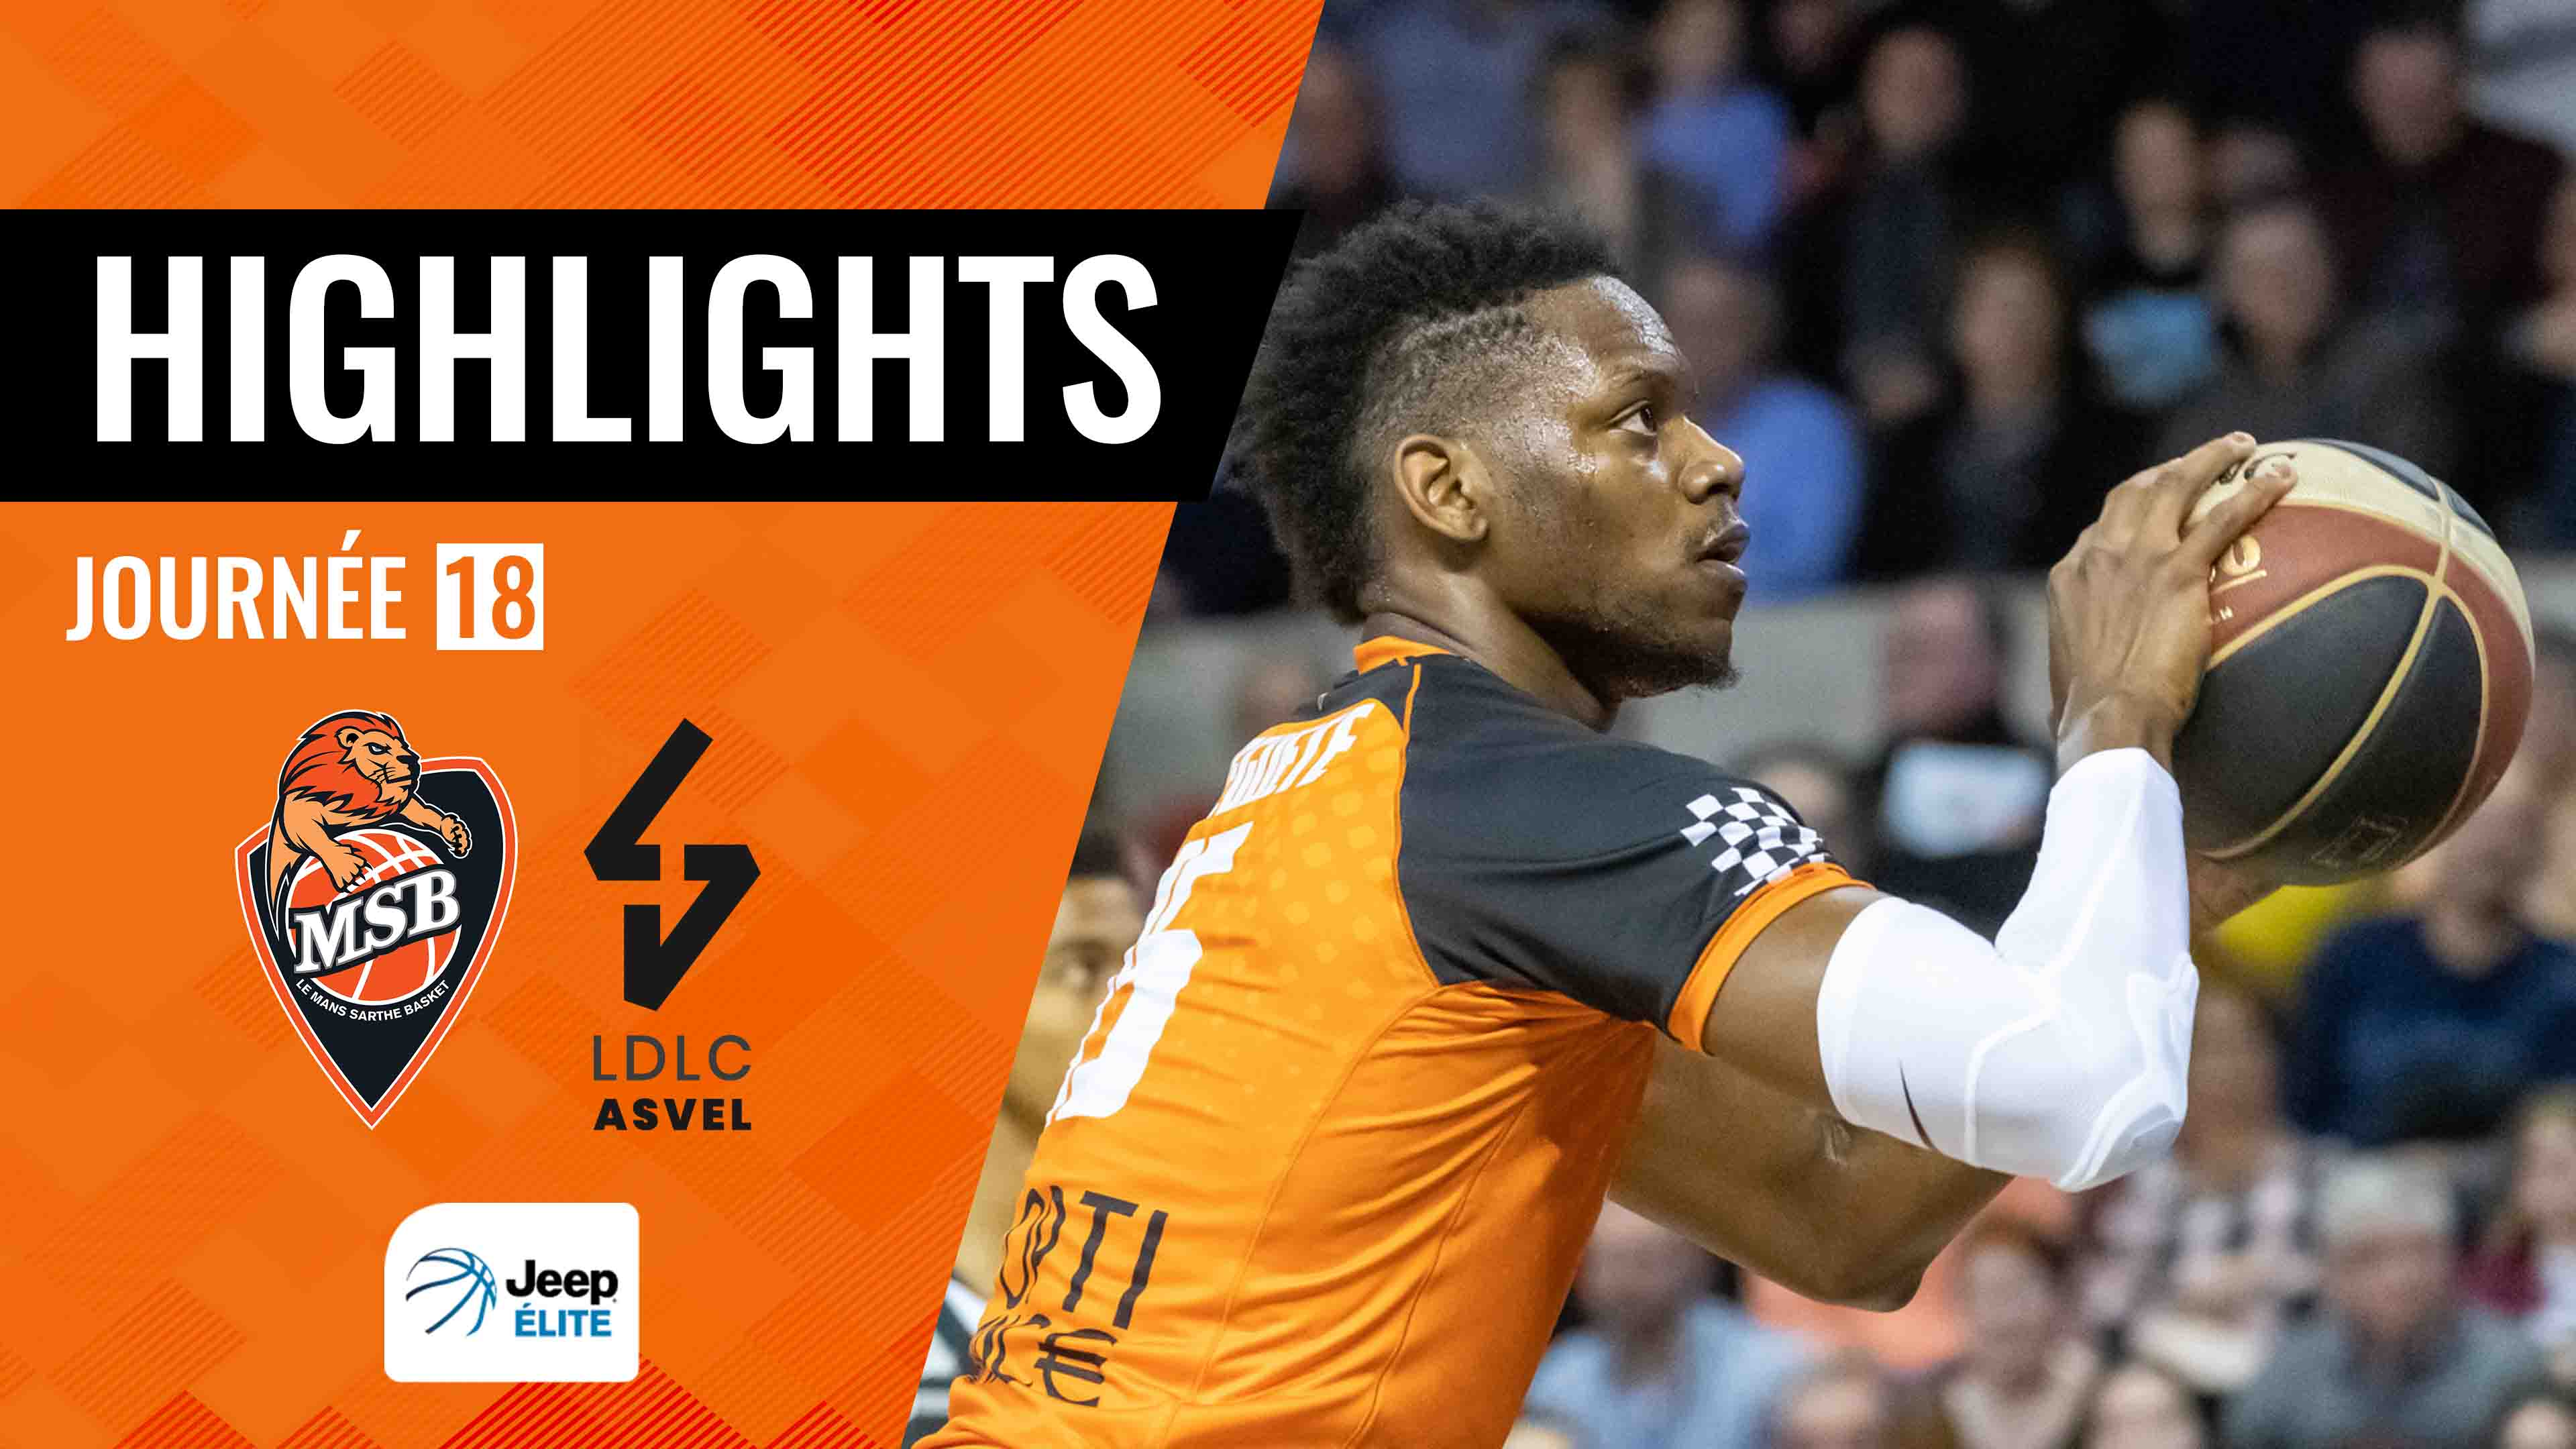 MSB vs LDLC Asvel | Le film du match